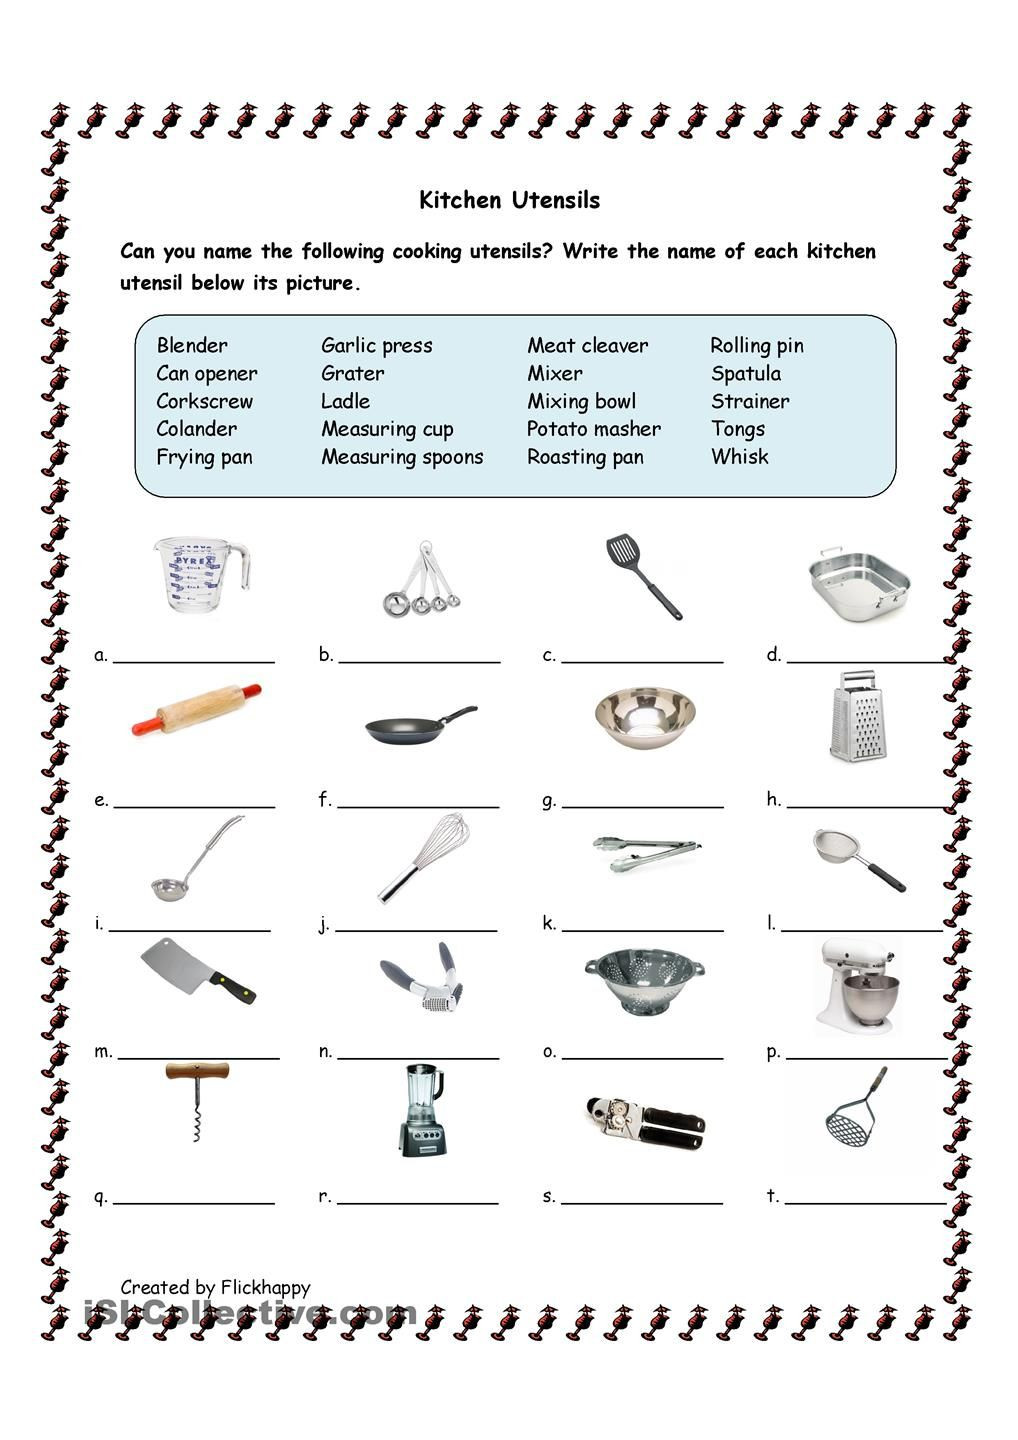 5th Grade Economics Worksheet Kitchen Utensils with Life Skills Classroom Cooking